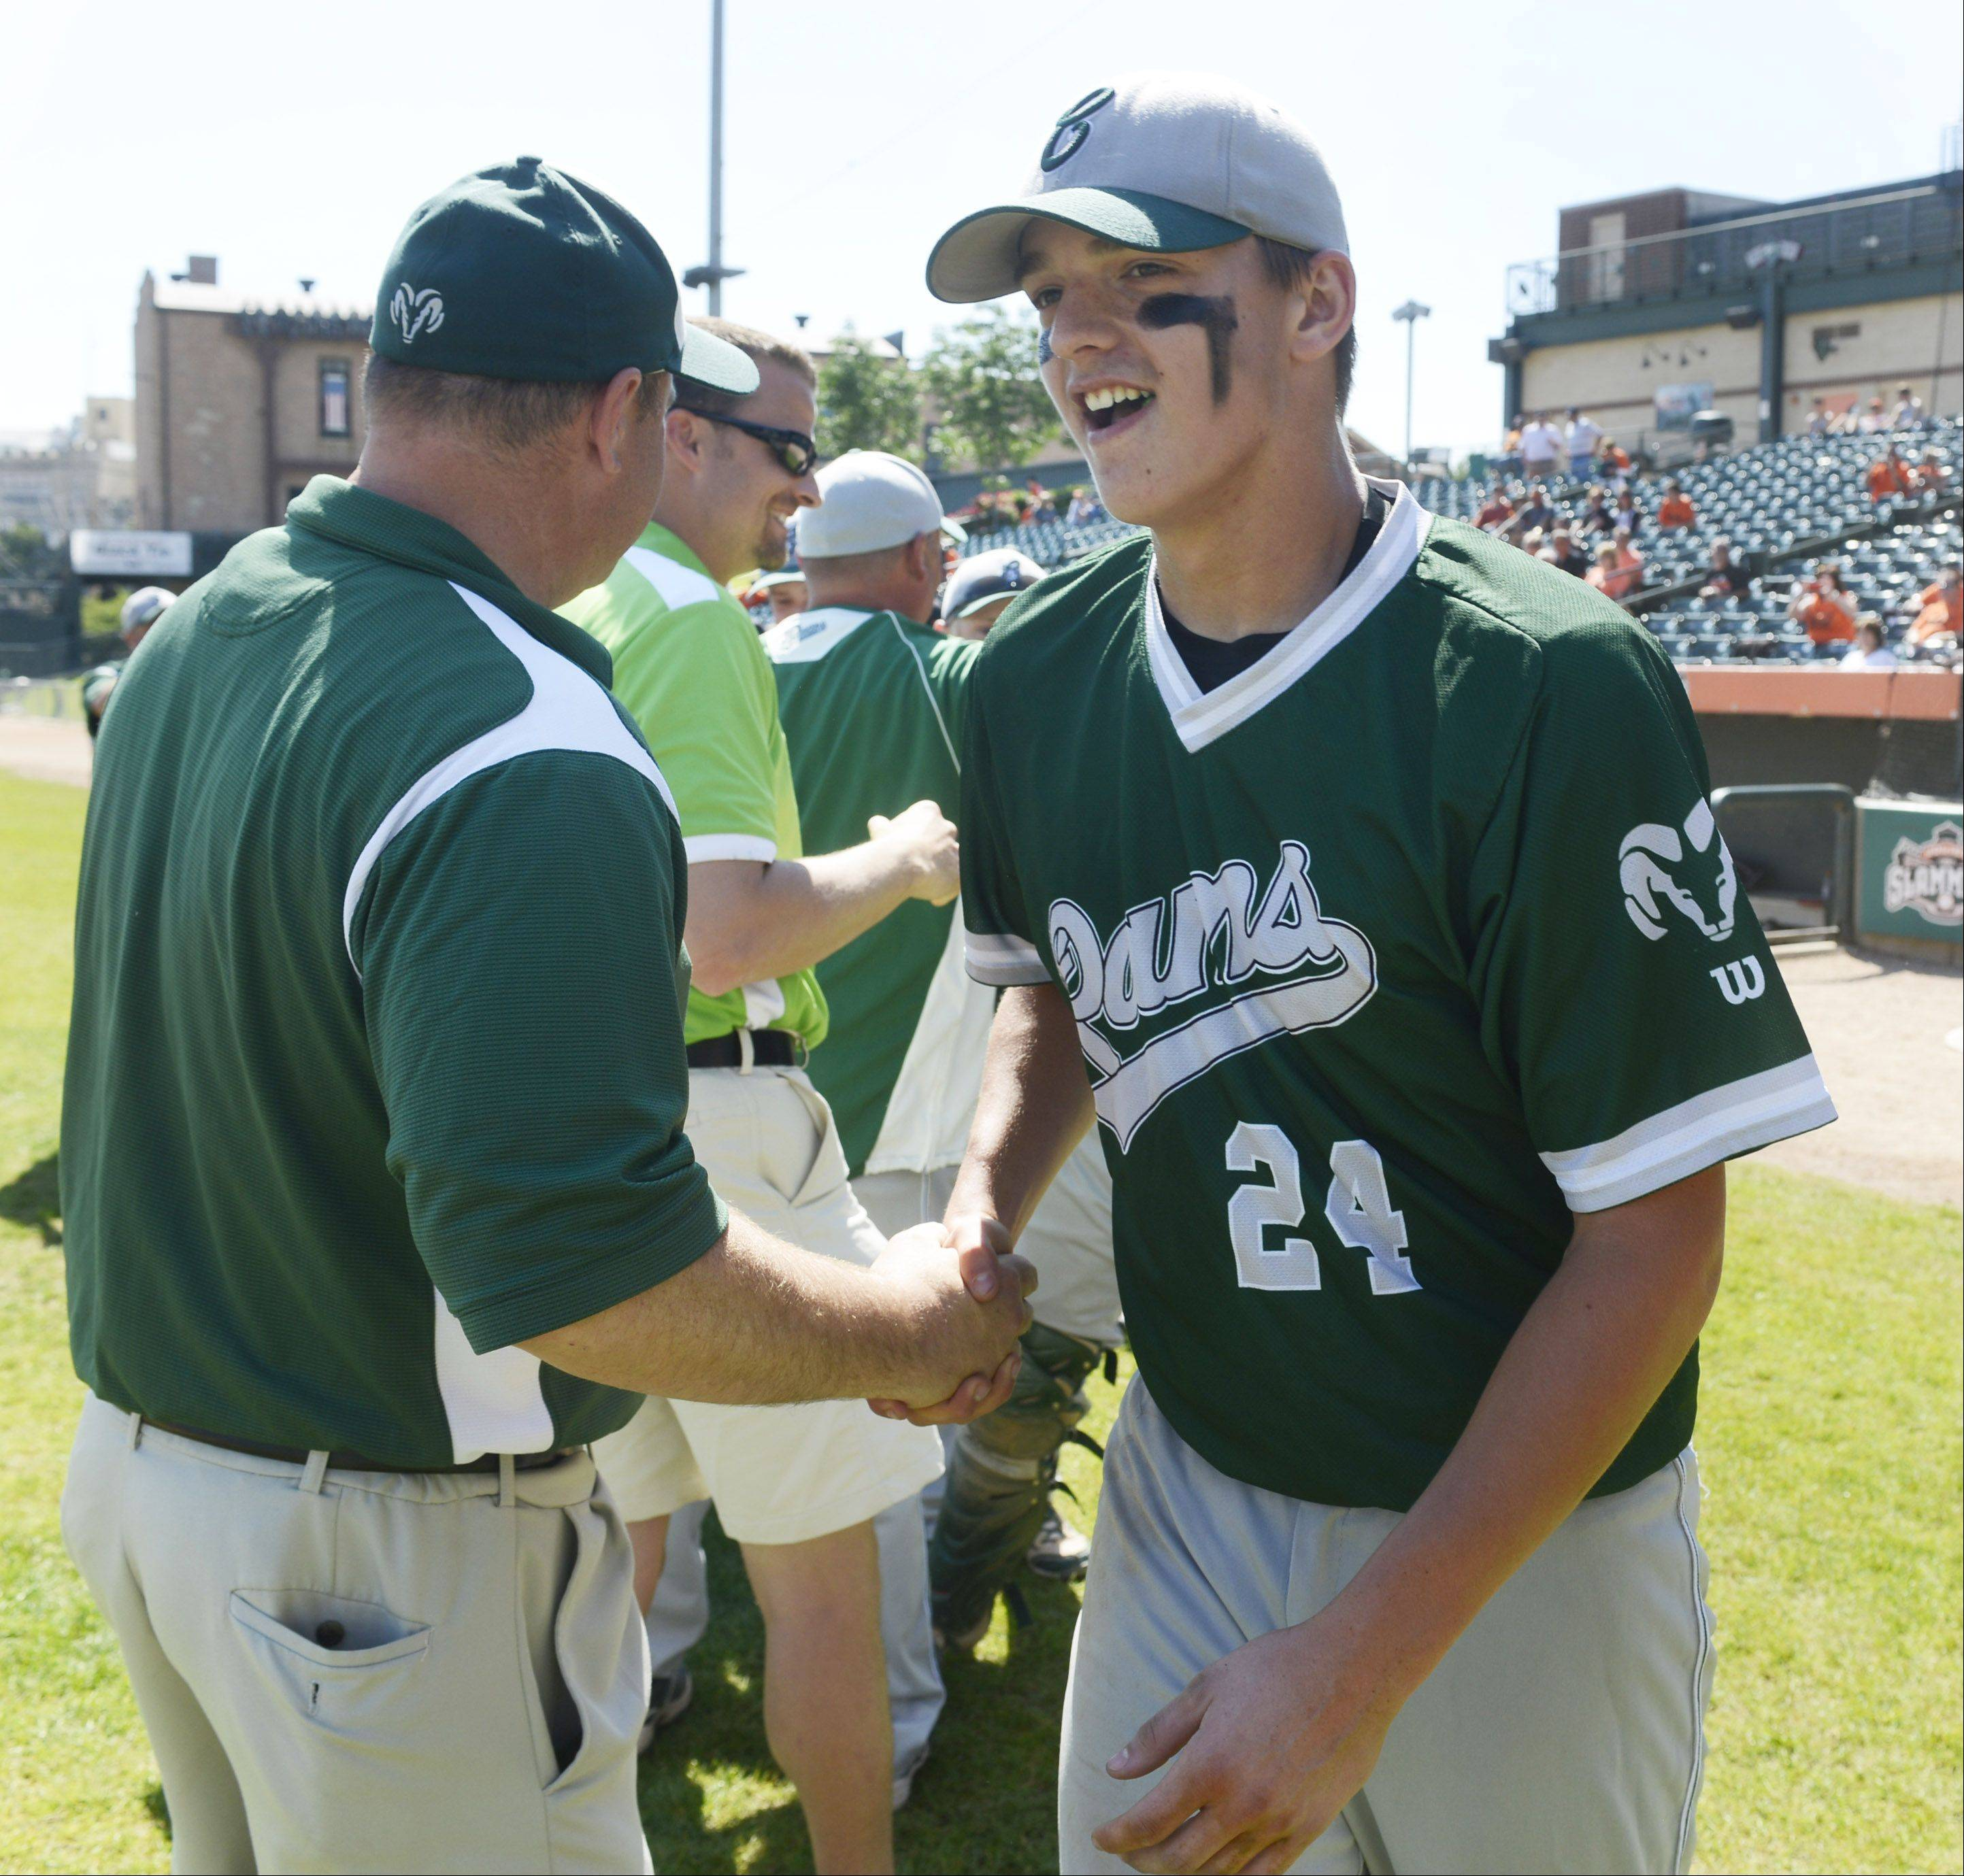 Grayslake Central's Kyle Clark and his teammates receive congratulations after the Rams beat Mt. Vernon 1-0 during the Class 3A state baseball third-place game at Silver Cross Field in Joliet Saturday.